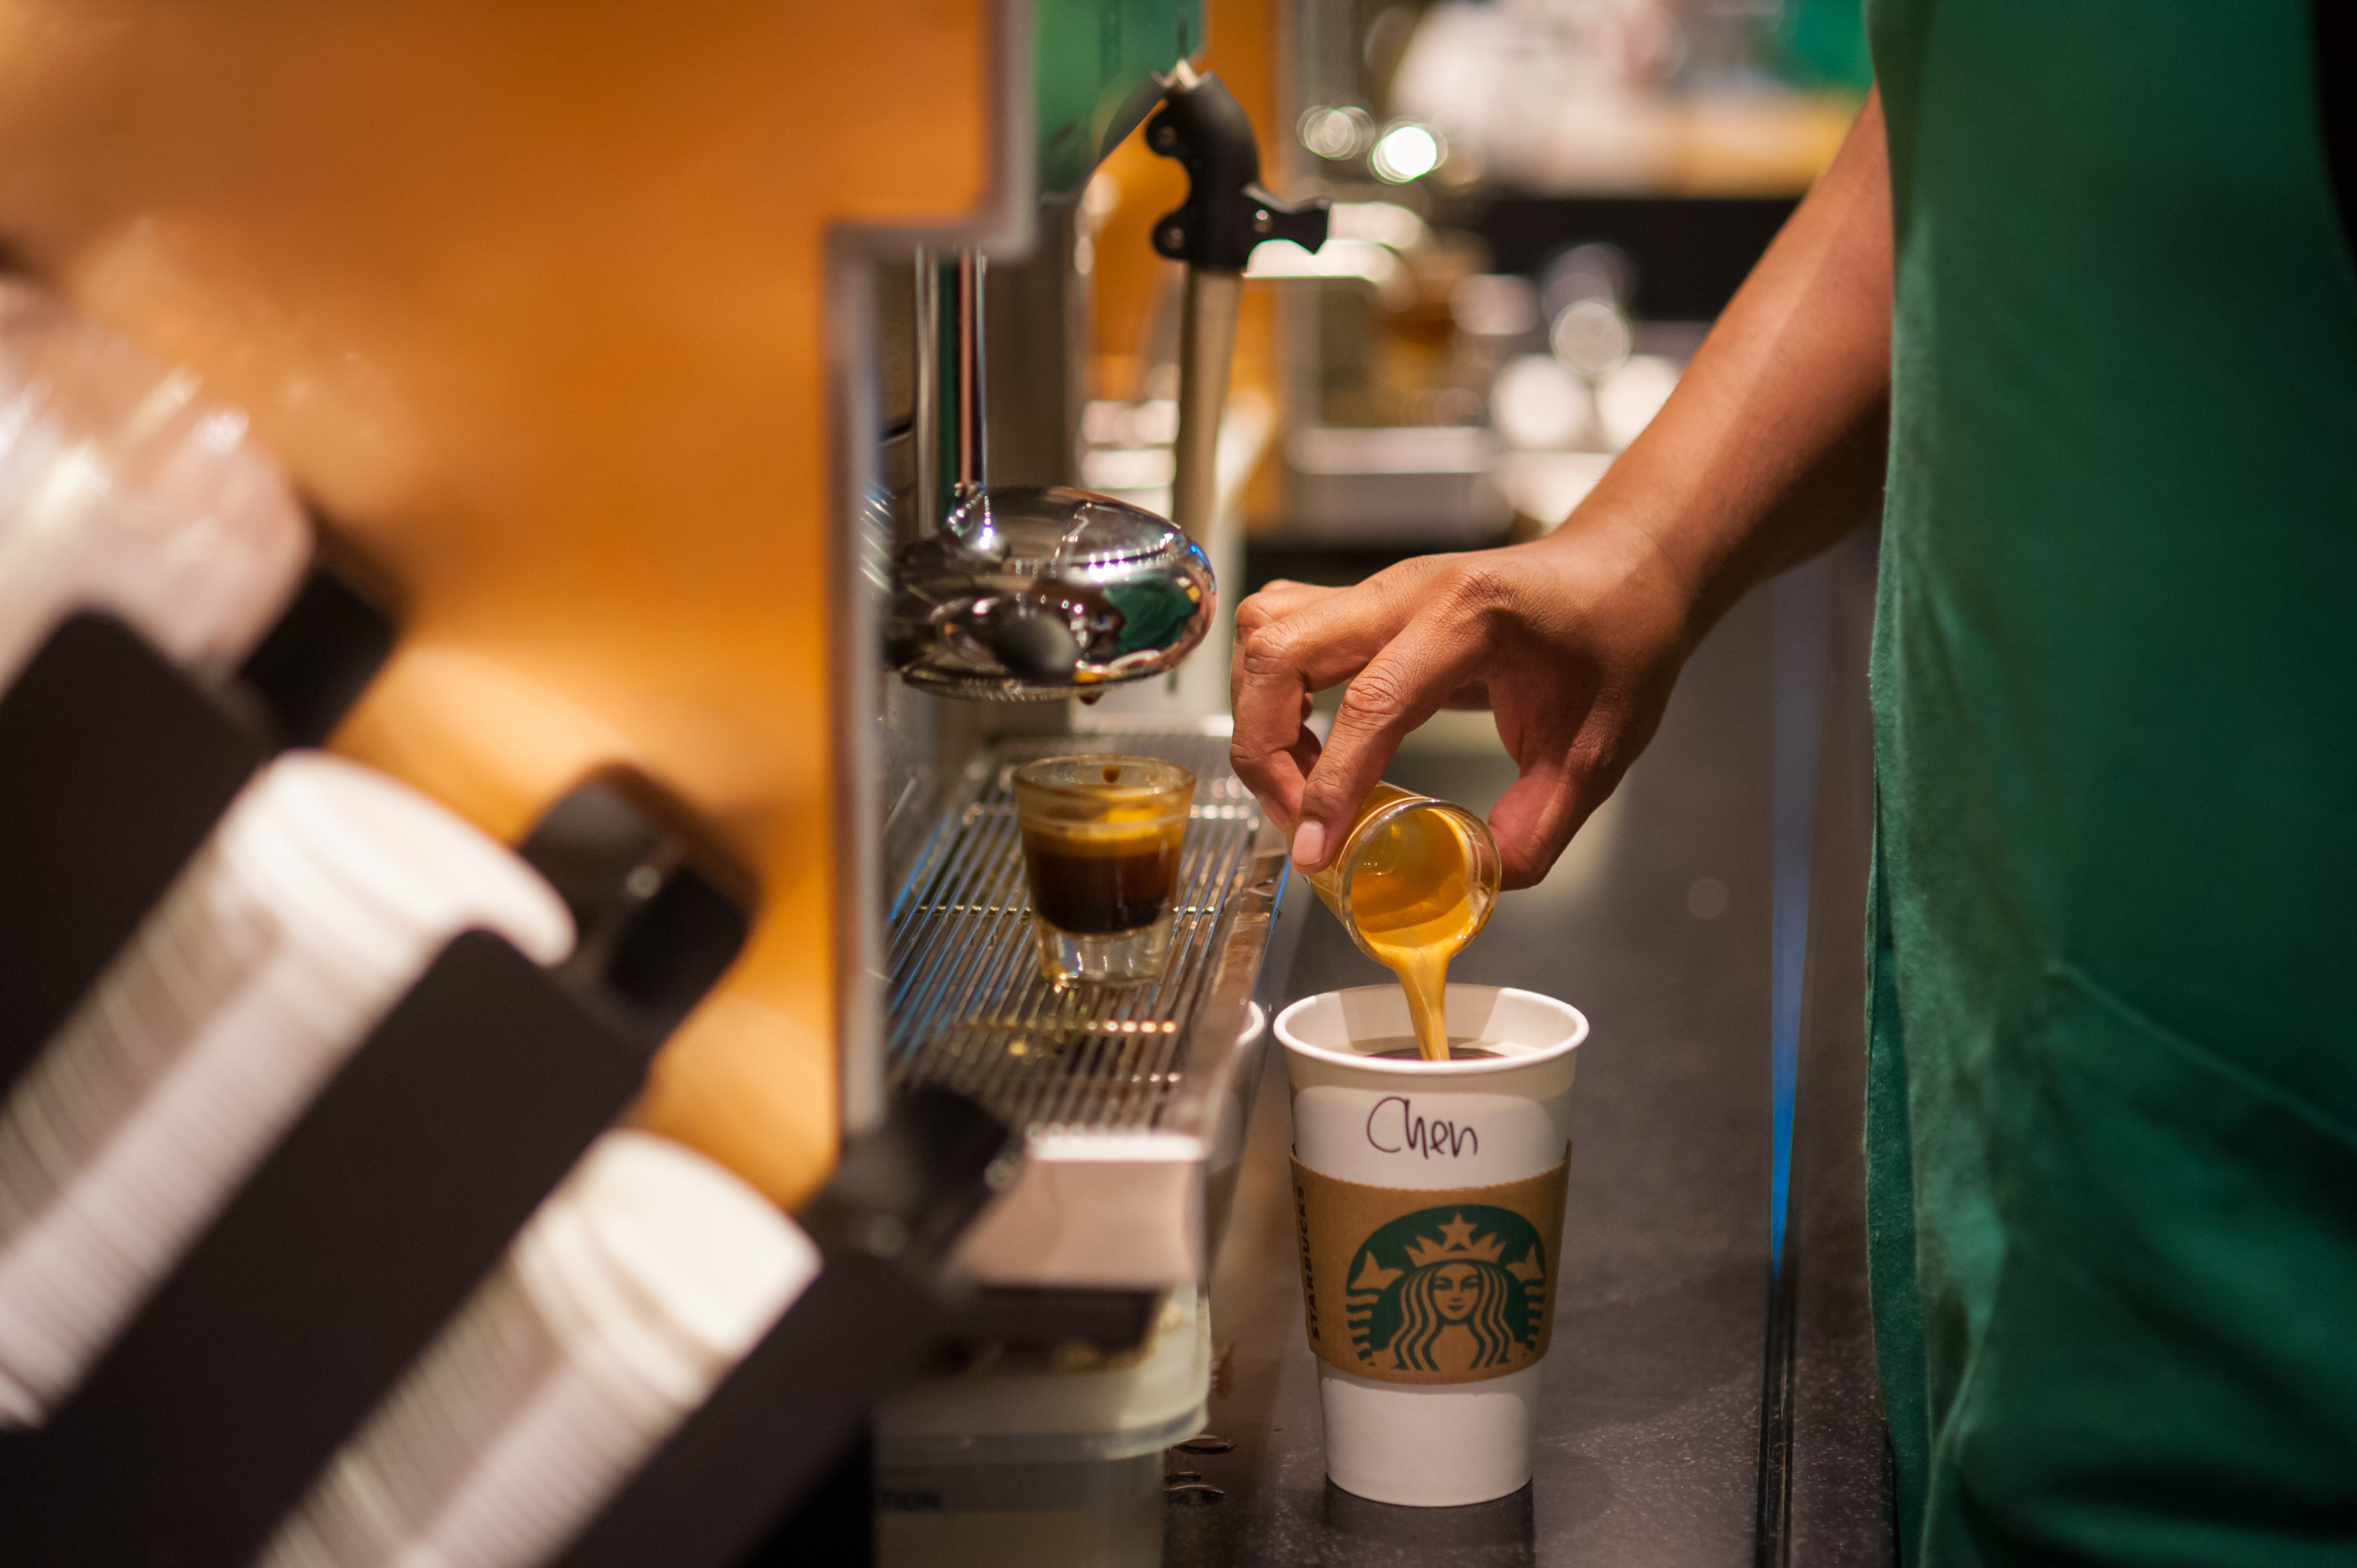 A closeup of a Starbucks employee's hand pouring espresso into a paper to-go cup with Starbucks branding.